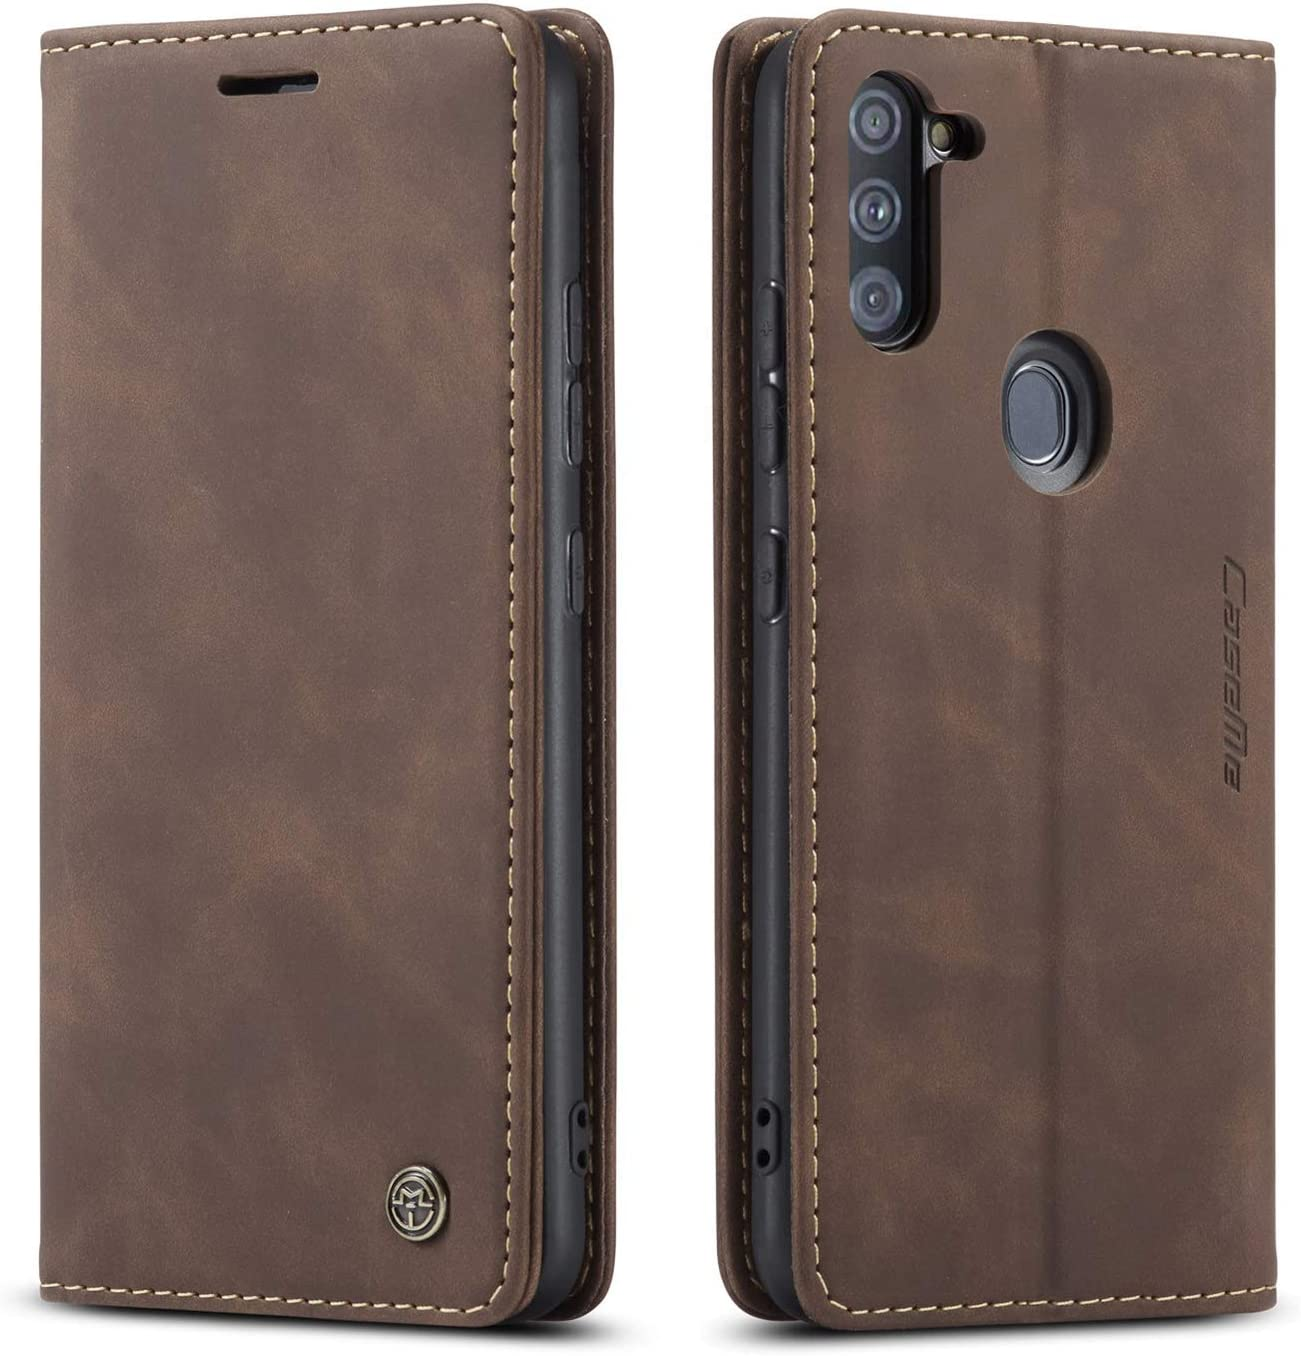 Samsung Galaxy A11 Case,Galaxy A11 Wallet Case with Card Holder,Magnetic Stand Leather Flip Case Cover for Samsung Galaxy A11(2020) 6.4 inch (Coffee)